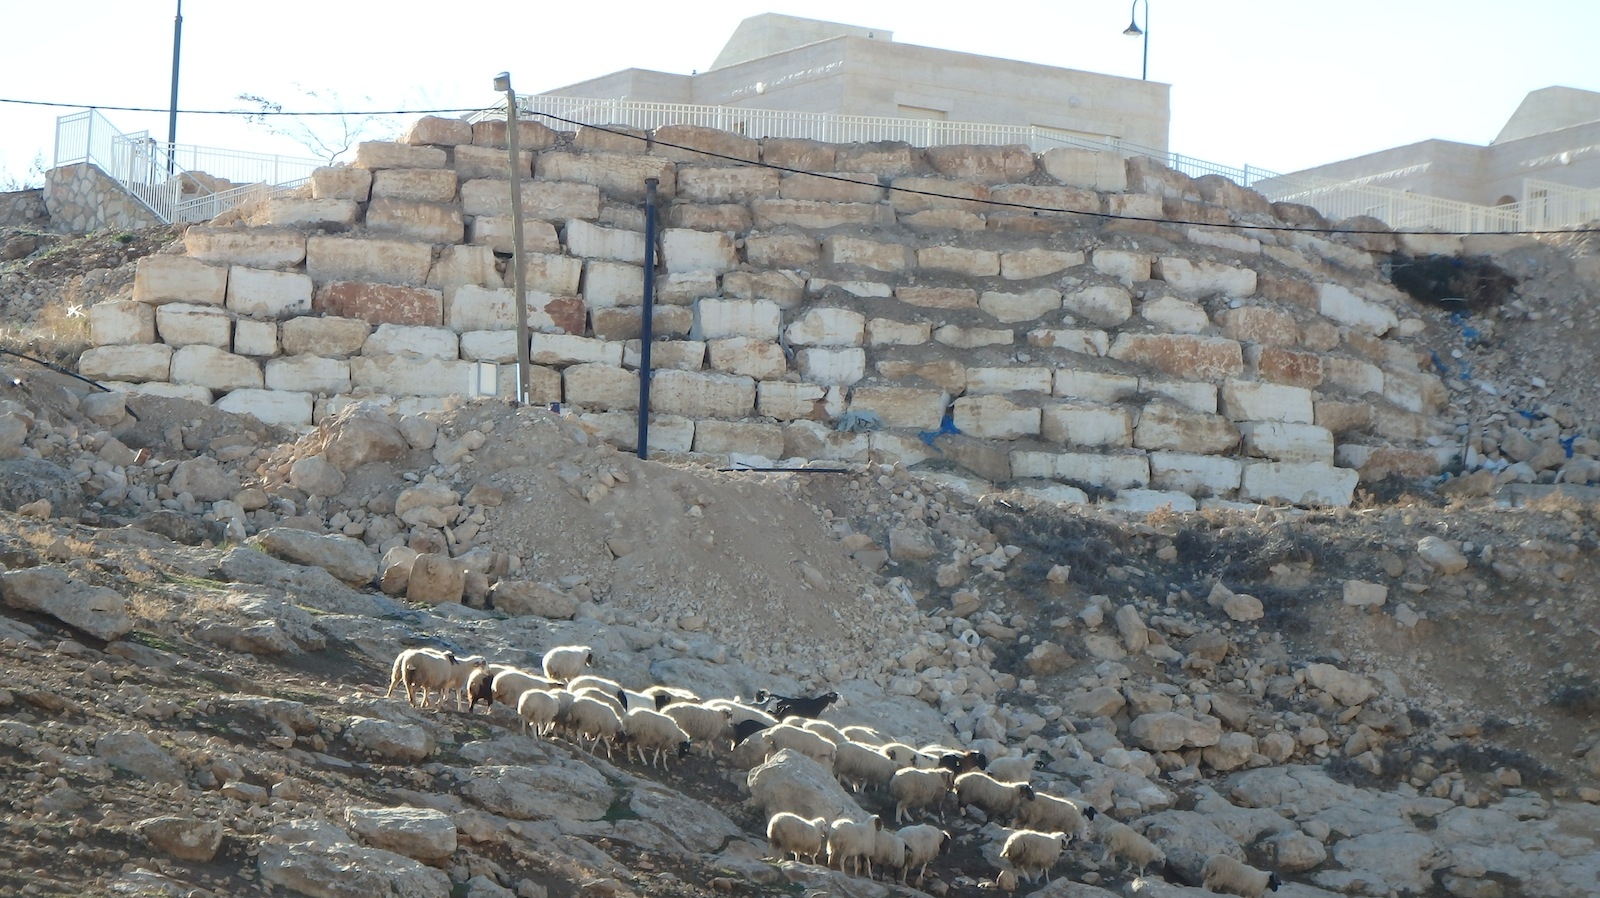 Palestinian sheep cross the poisoned land in Umm Al Kheir village